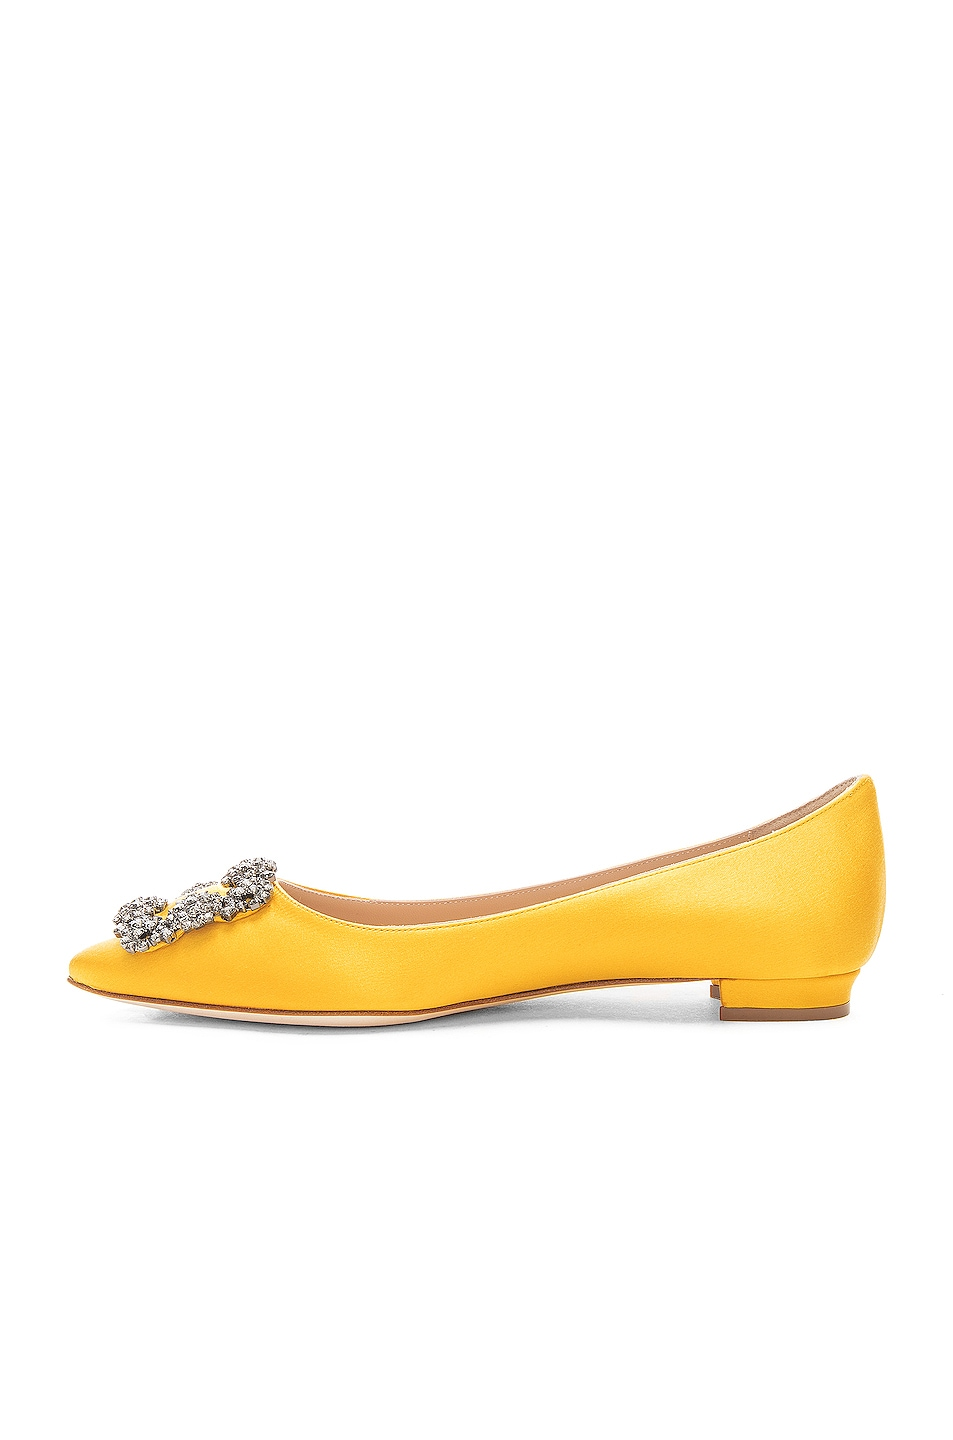 Image 5 of Manolo Blahnik Hangisiflat Satin 10 Pea Flat in Yellow